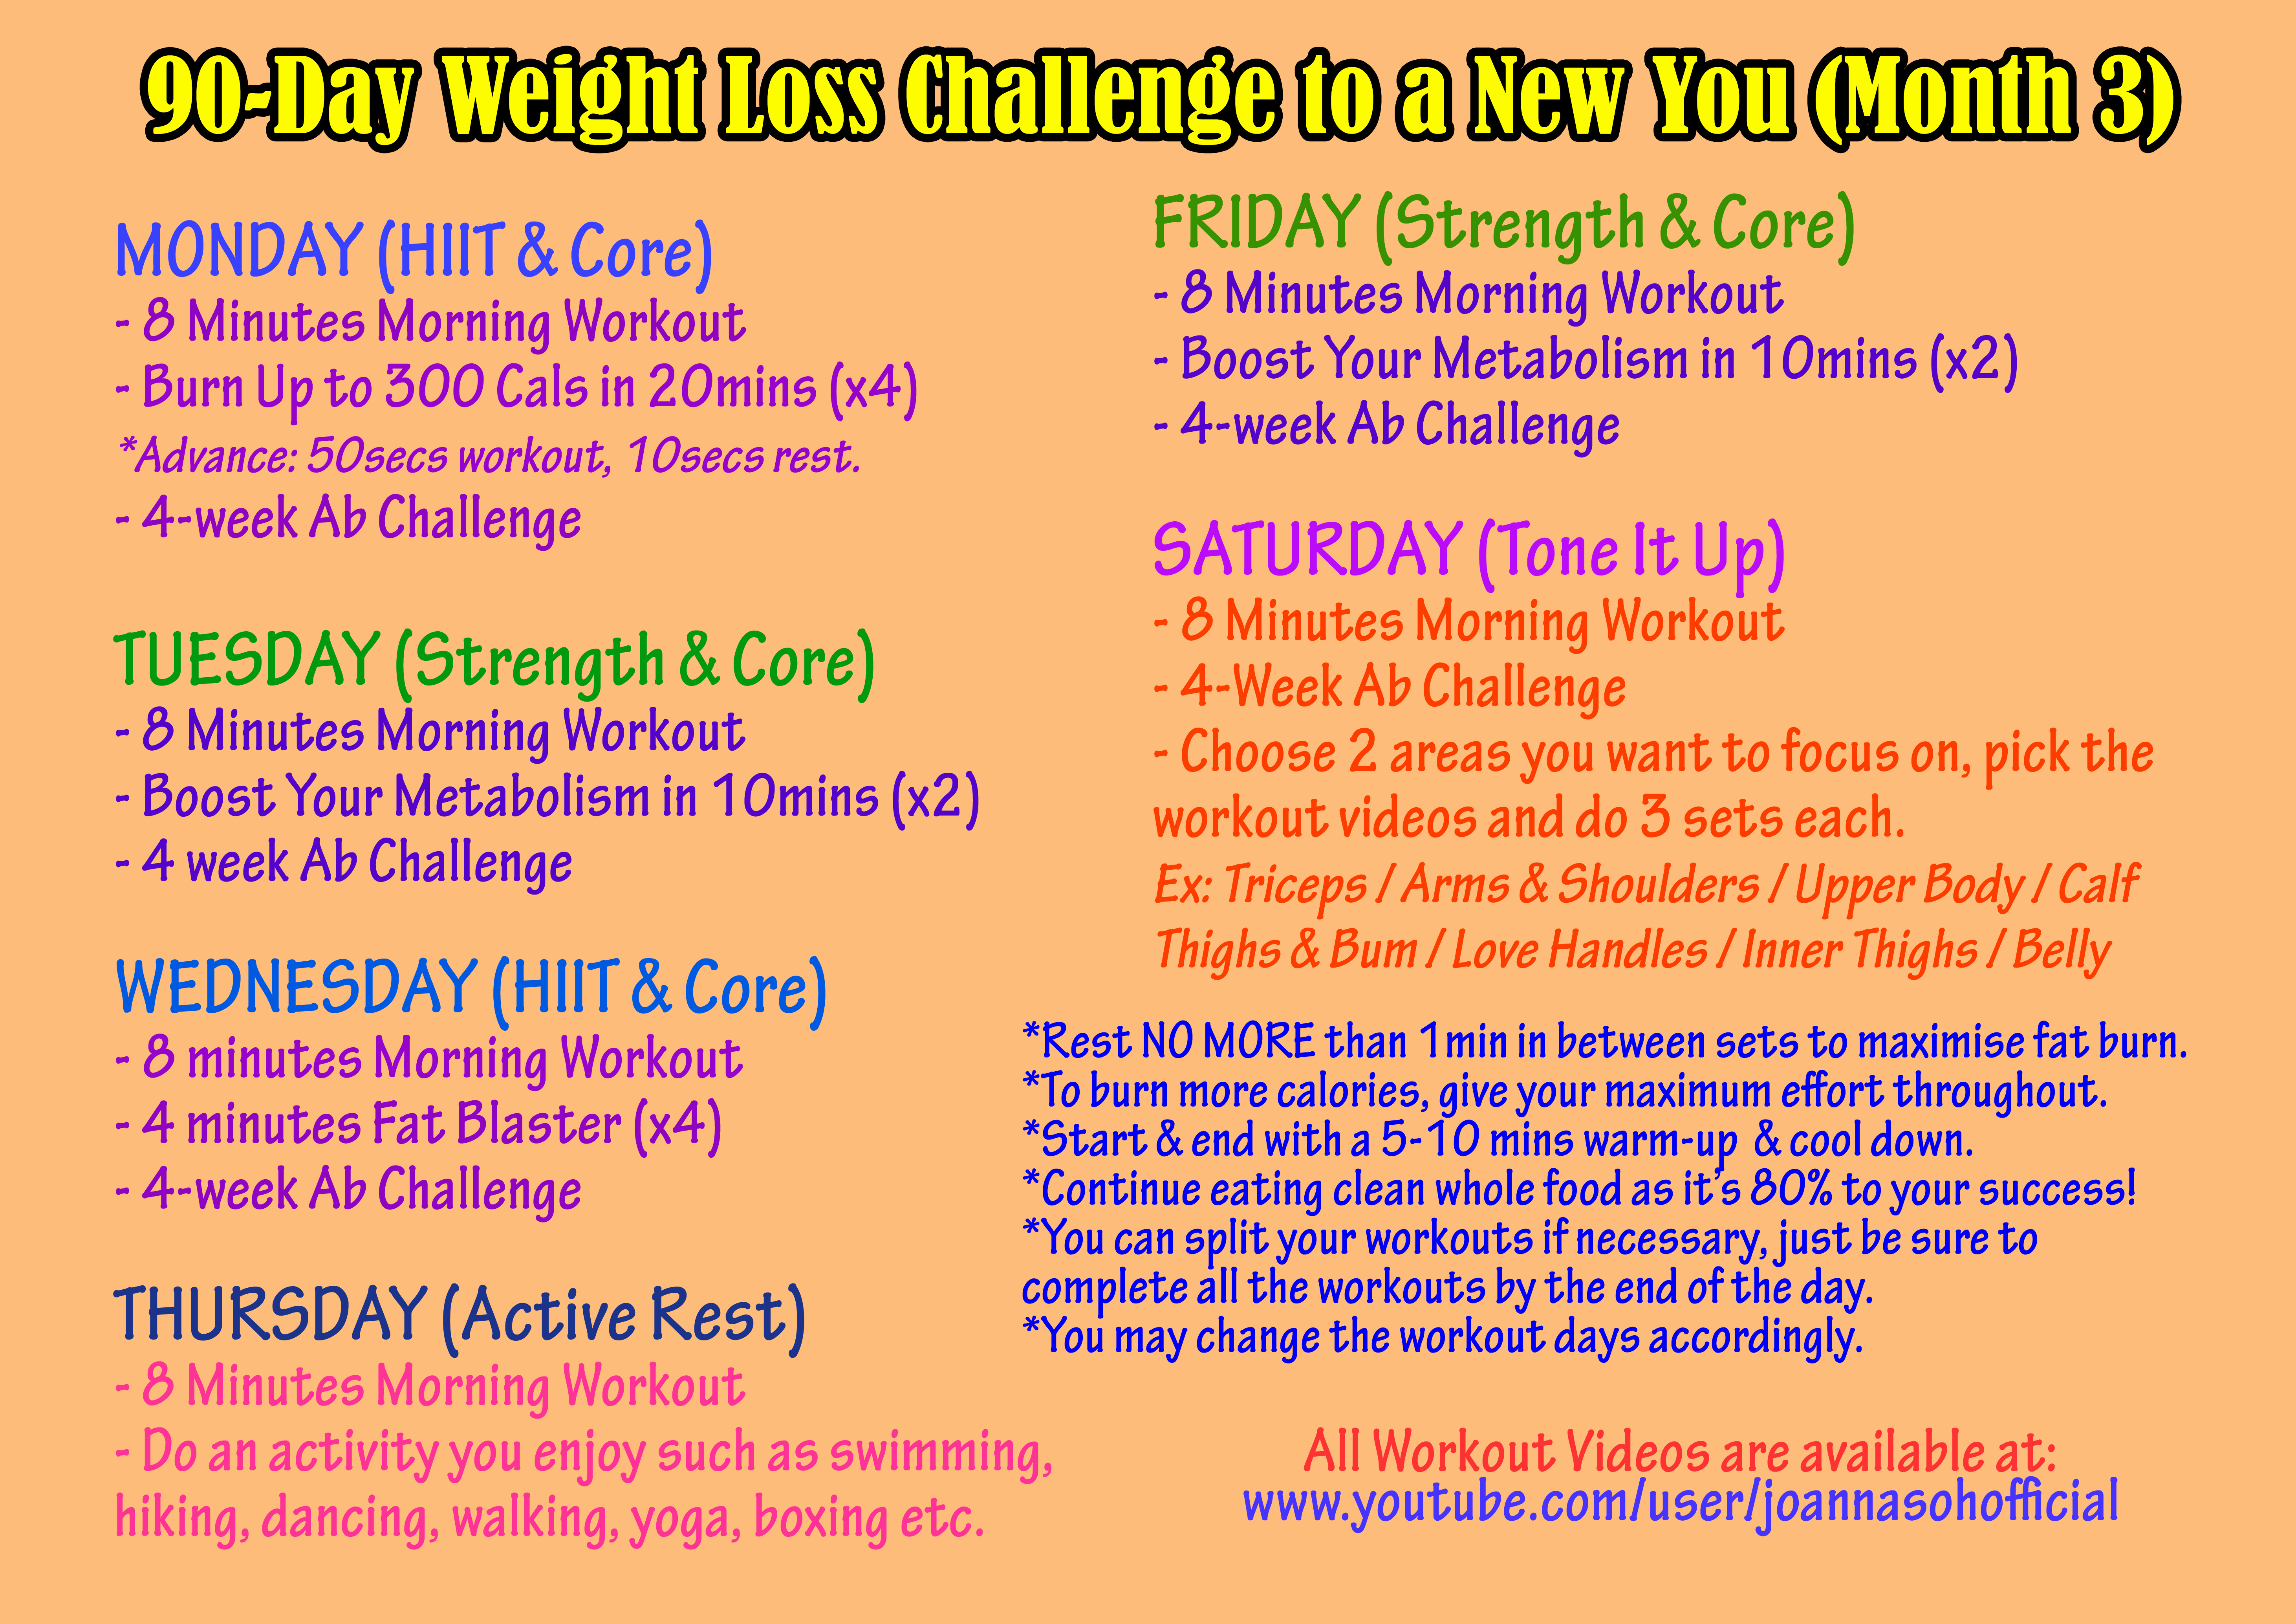 90 Day Workout Plan Luxury 3 Day Workout to Lose Weight